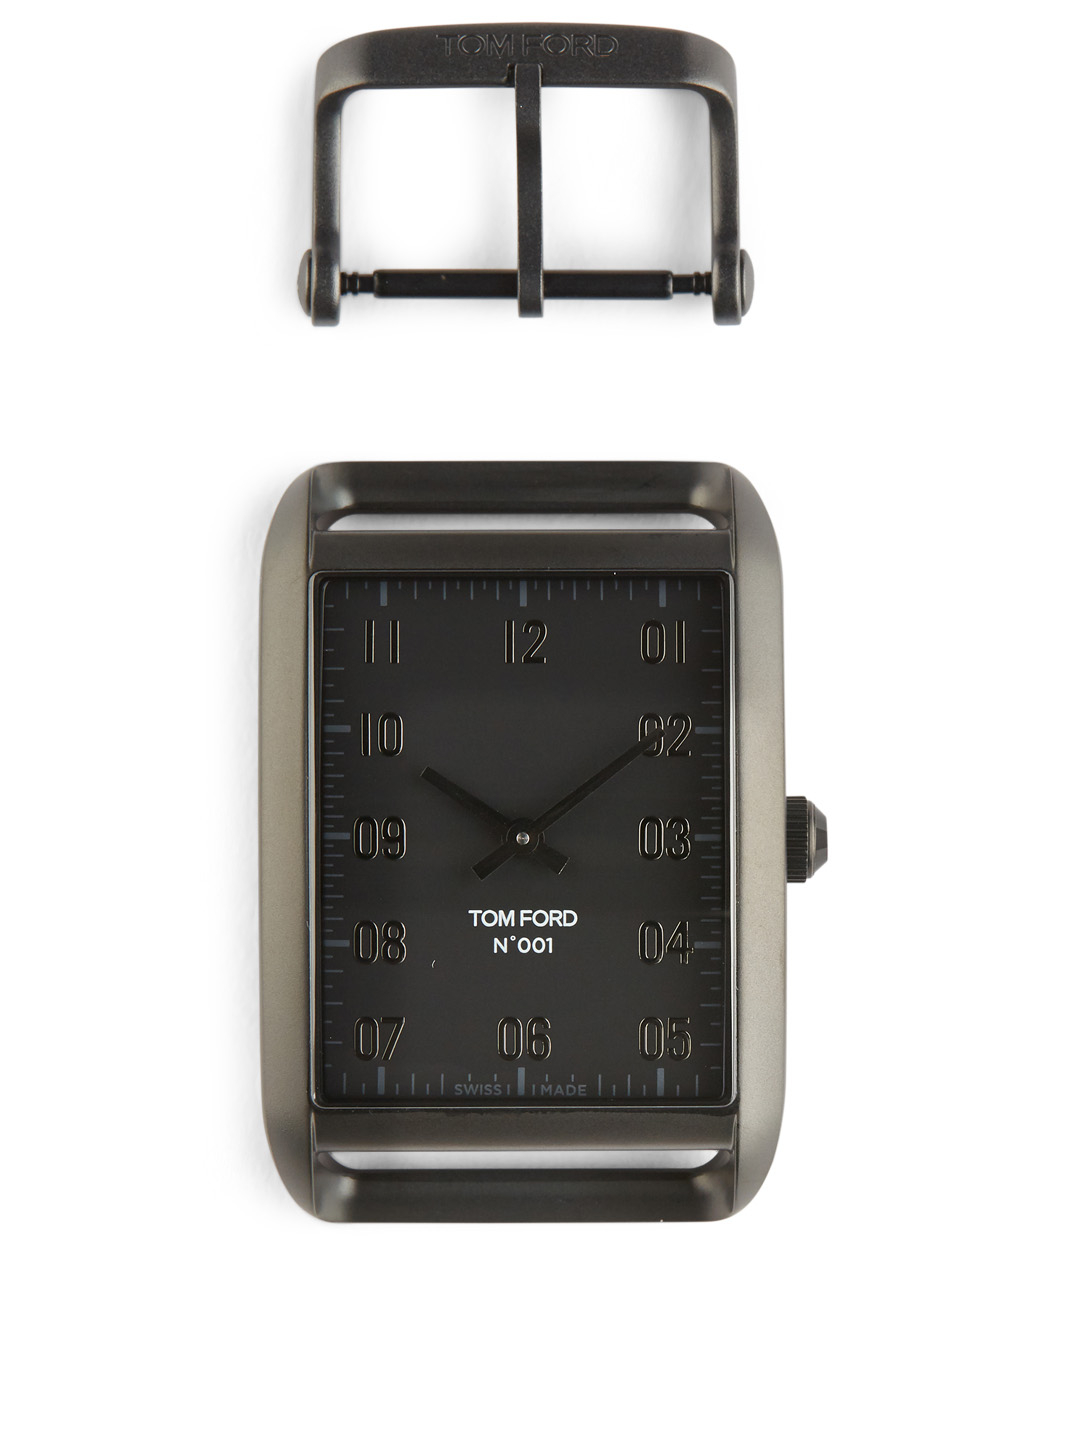 TOM FORD Large 001 Coated Stainless Steel Watch Case With Buckle Womens Black